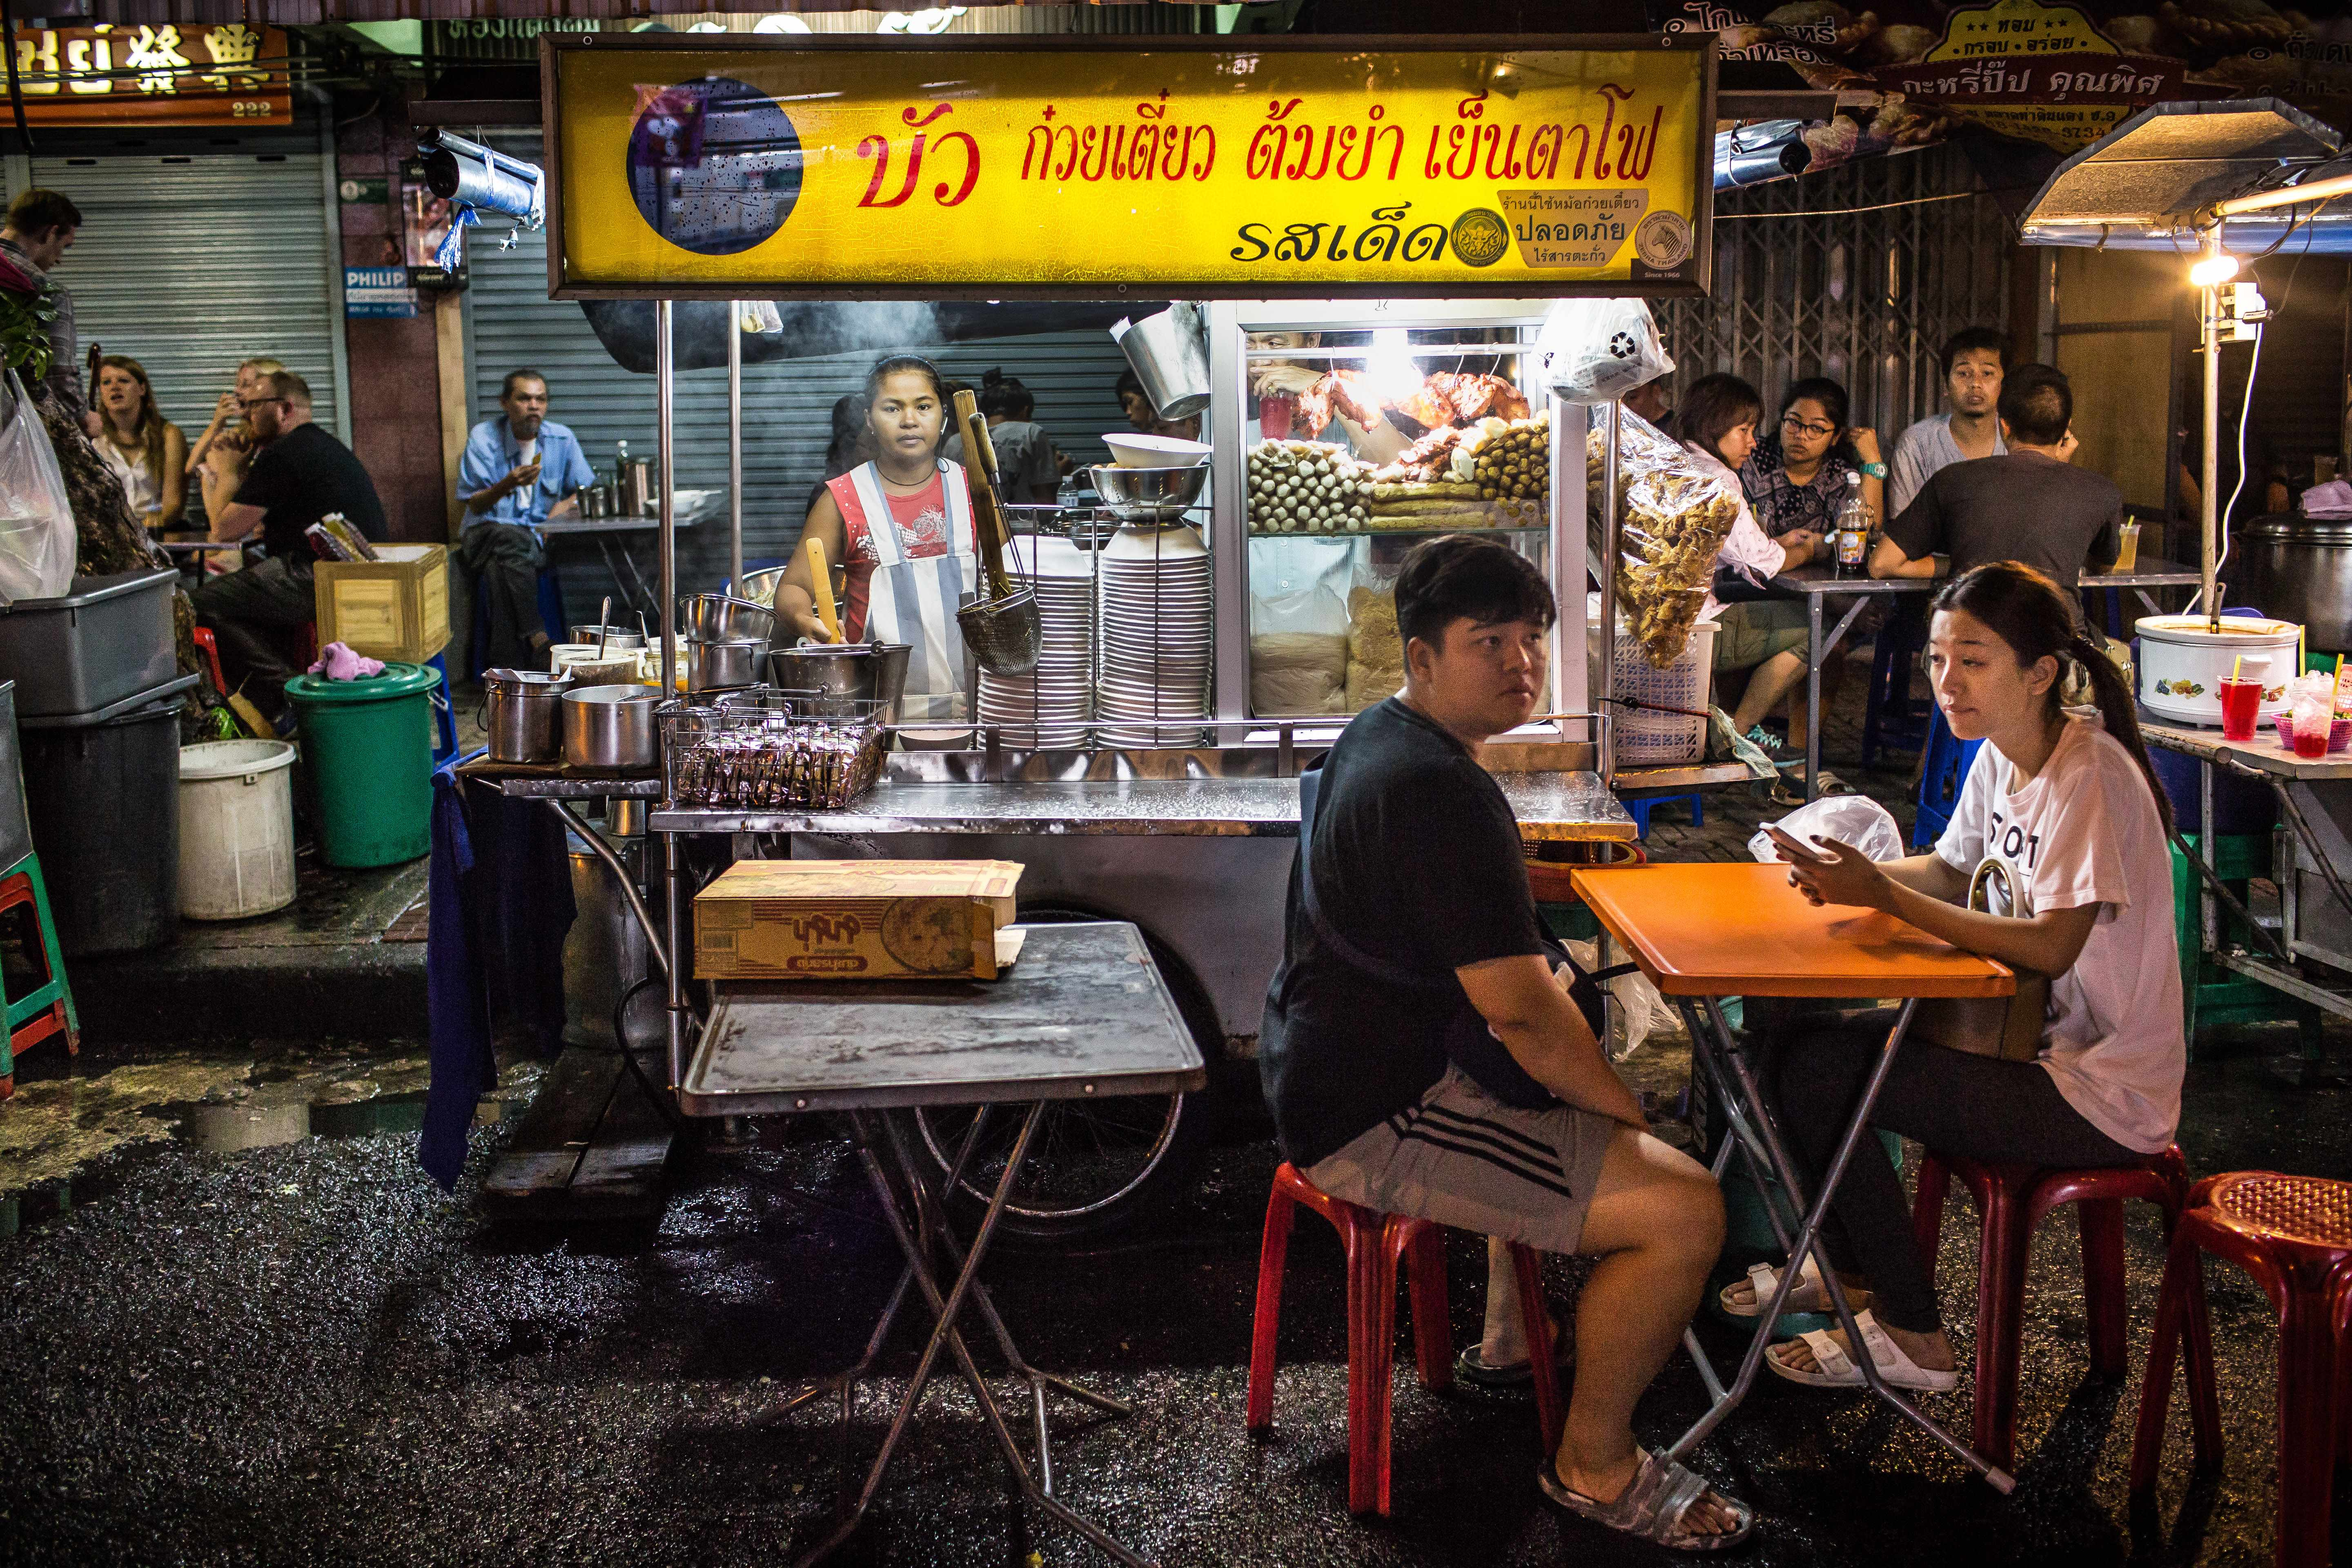 Bangkok Food Guide - Street food scene with woman standing behind stall